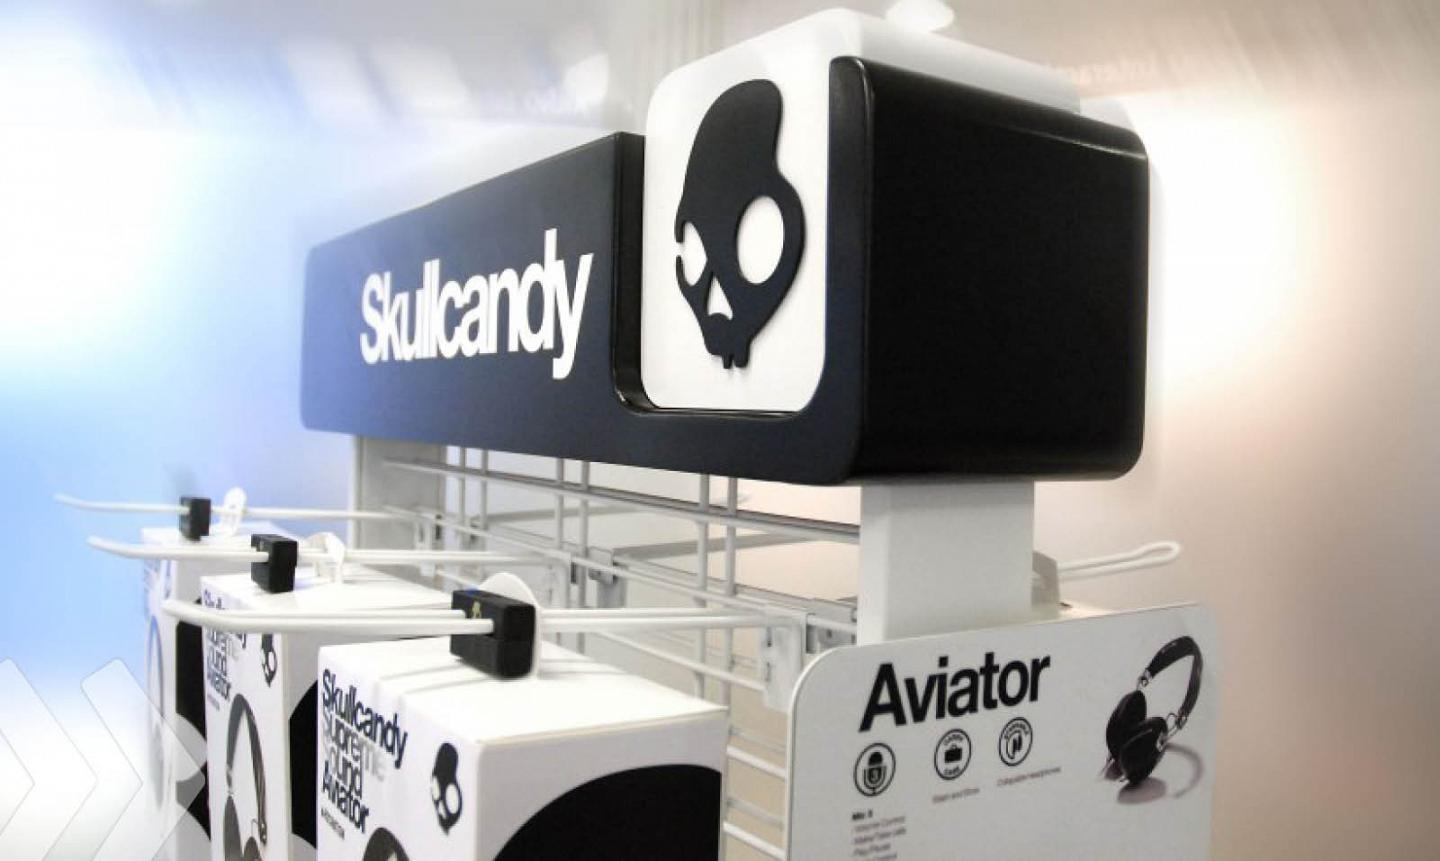 skullcandy 01 display shopfitting warenpräsentation